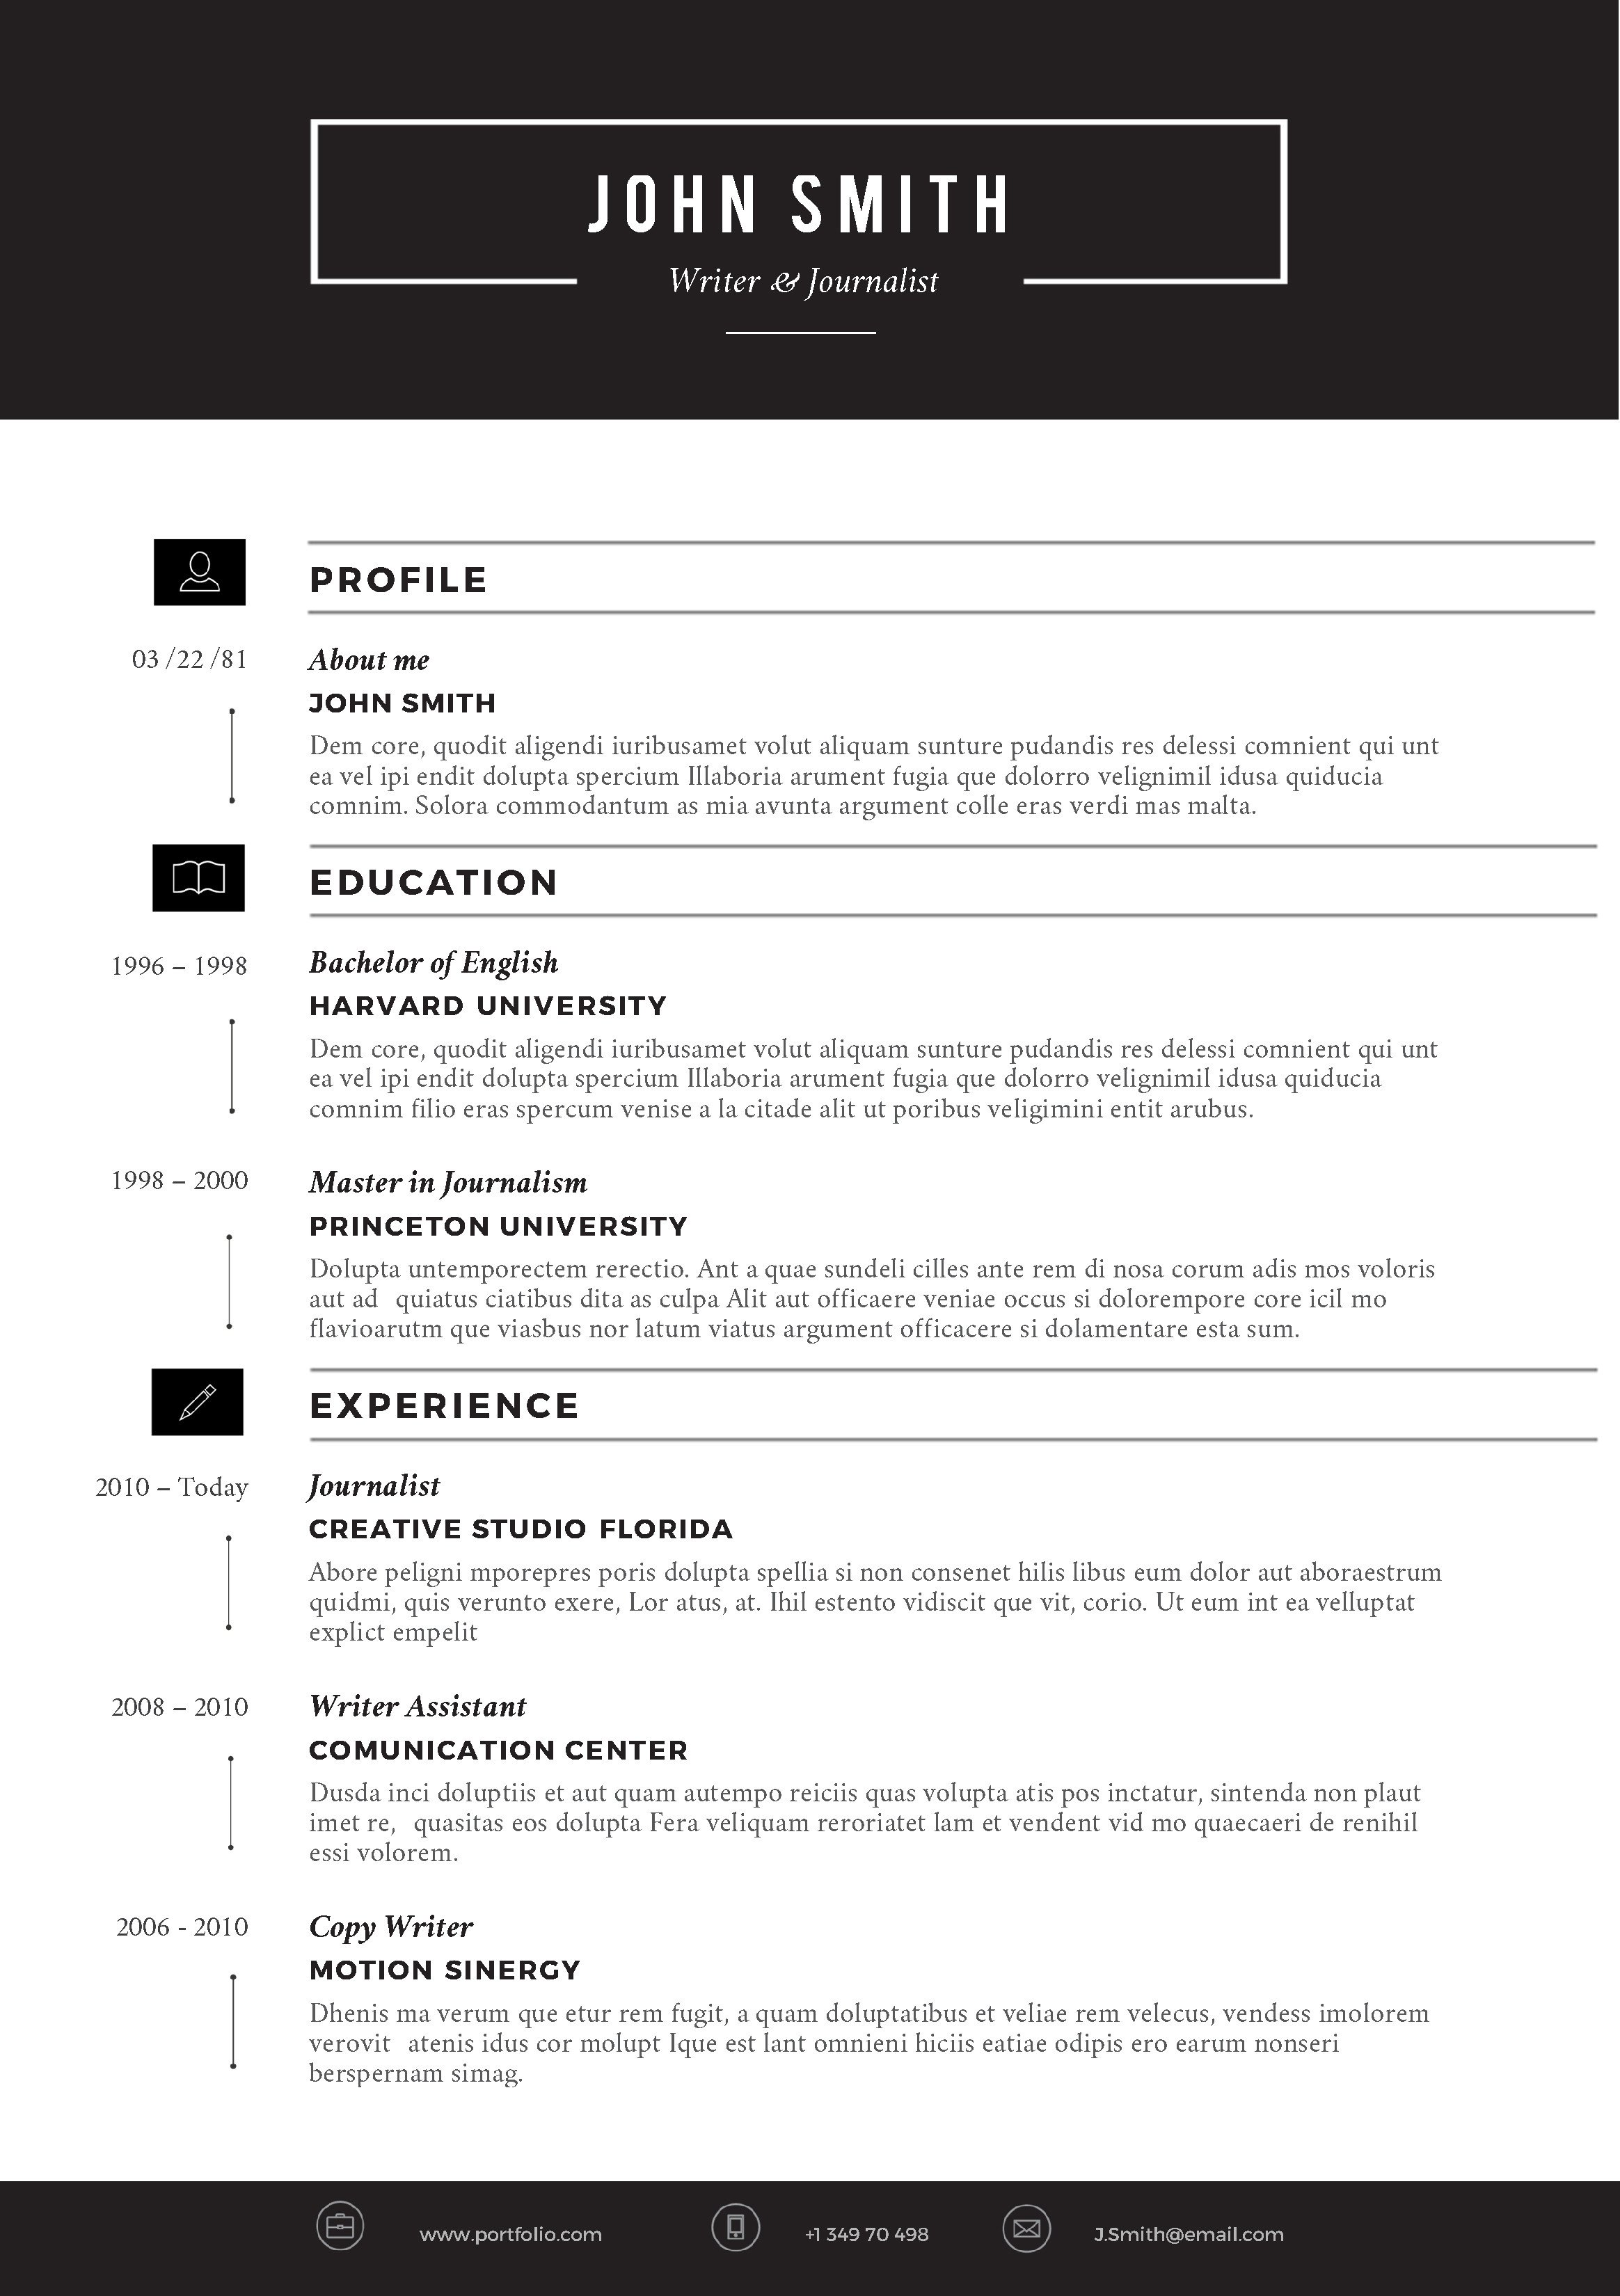 Microsoft Office Templates Resume Fice Resume Template Cover Letter Portfolio